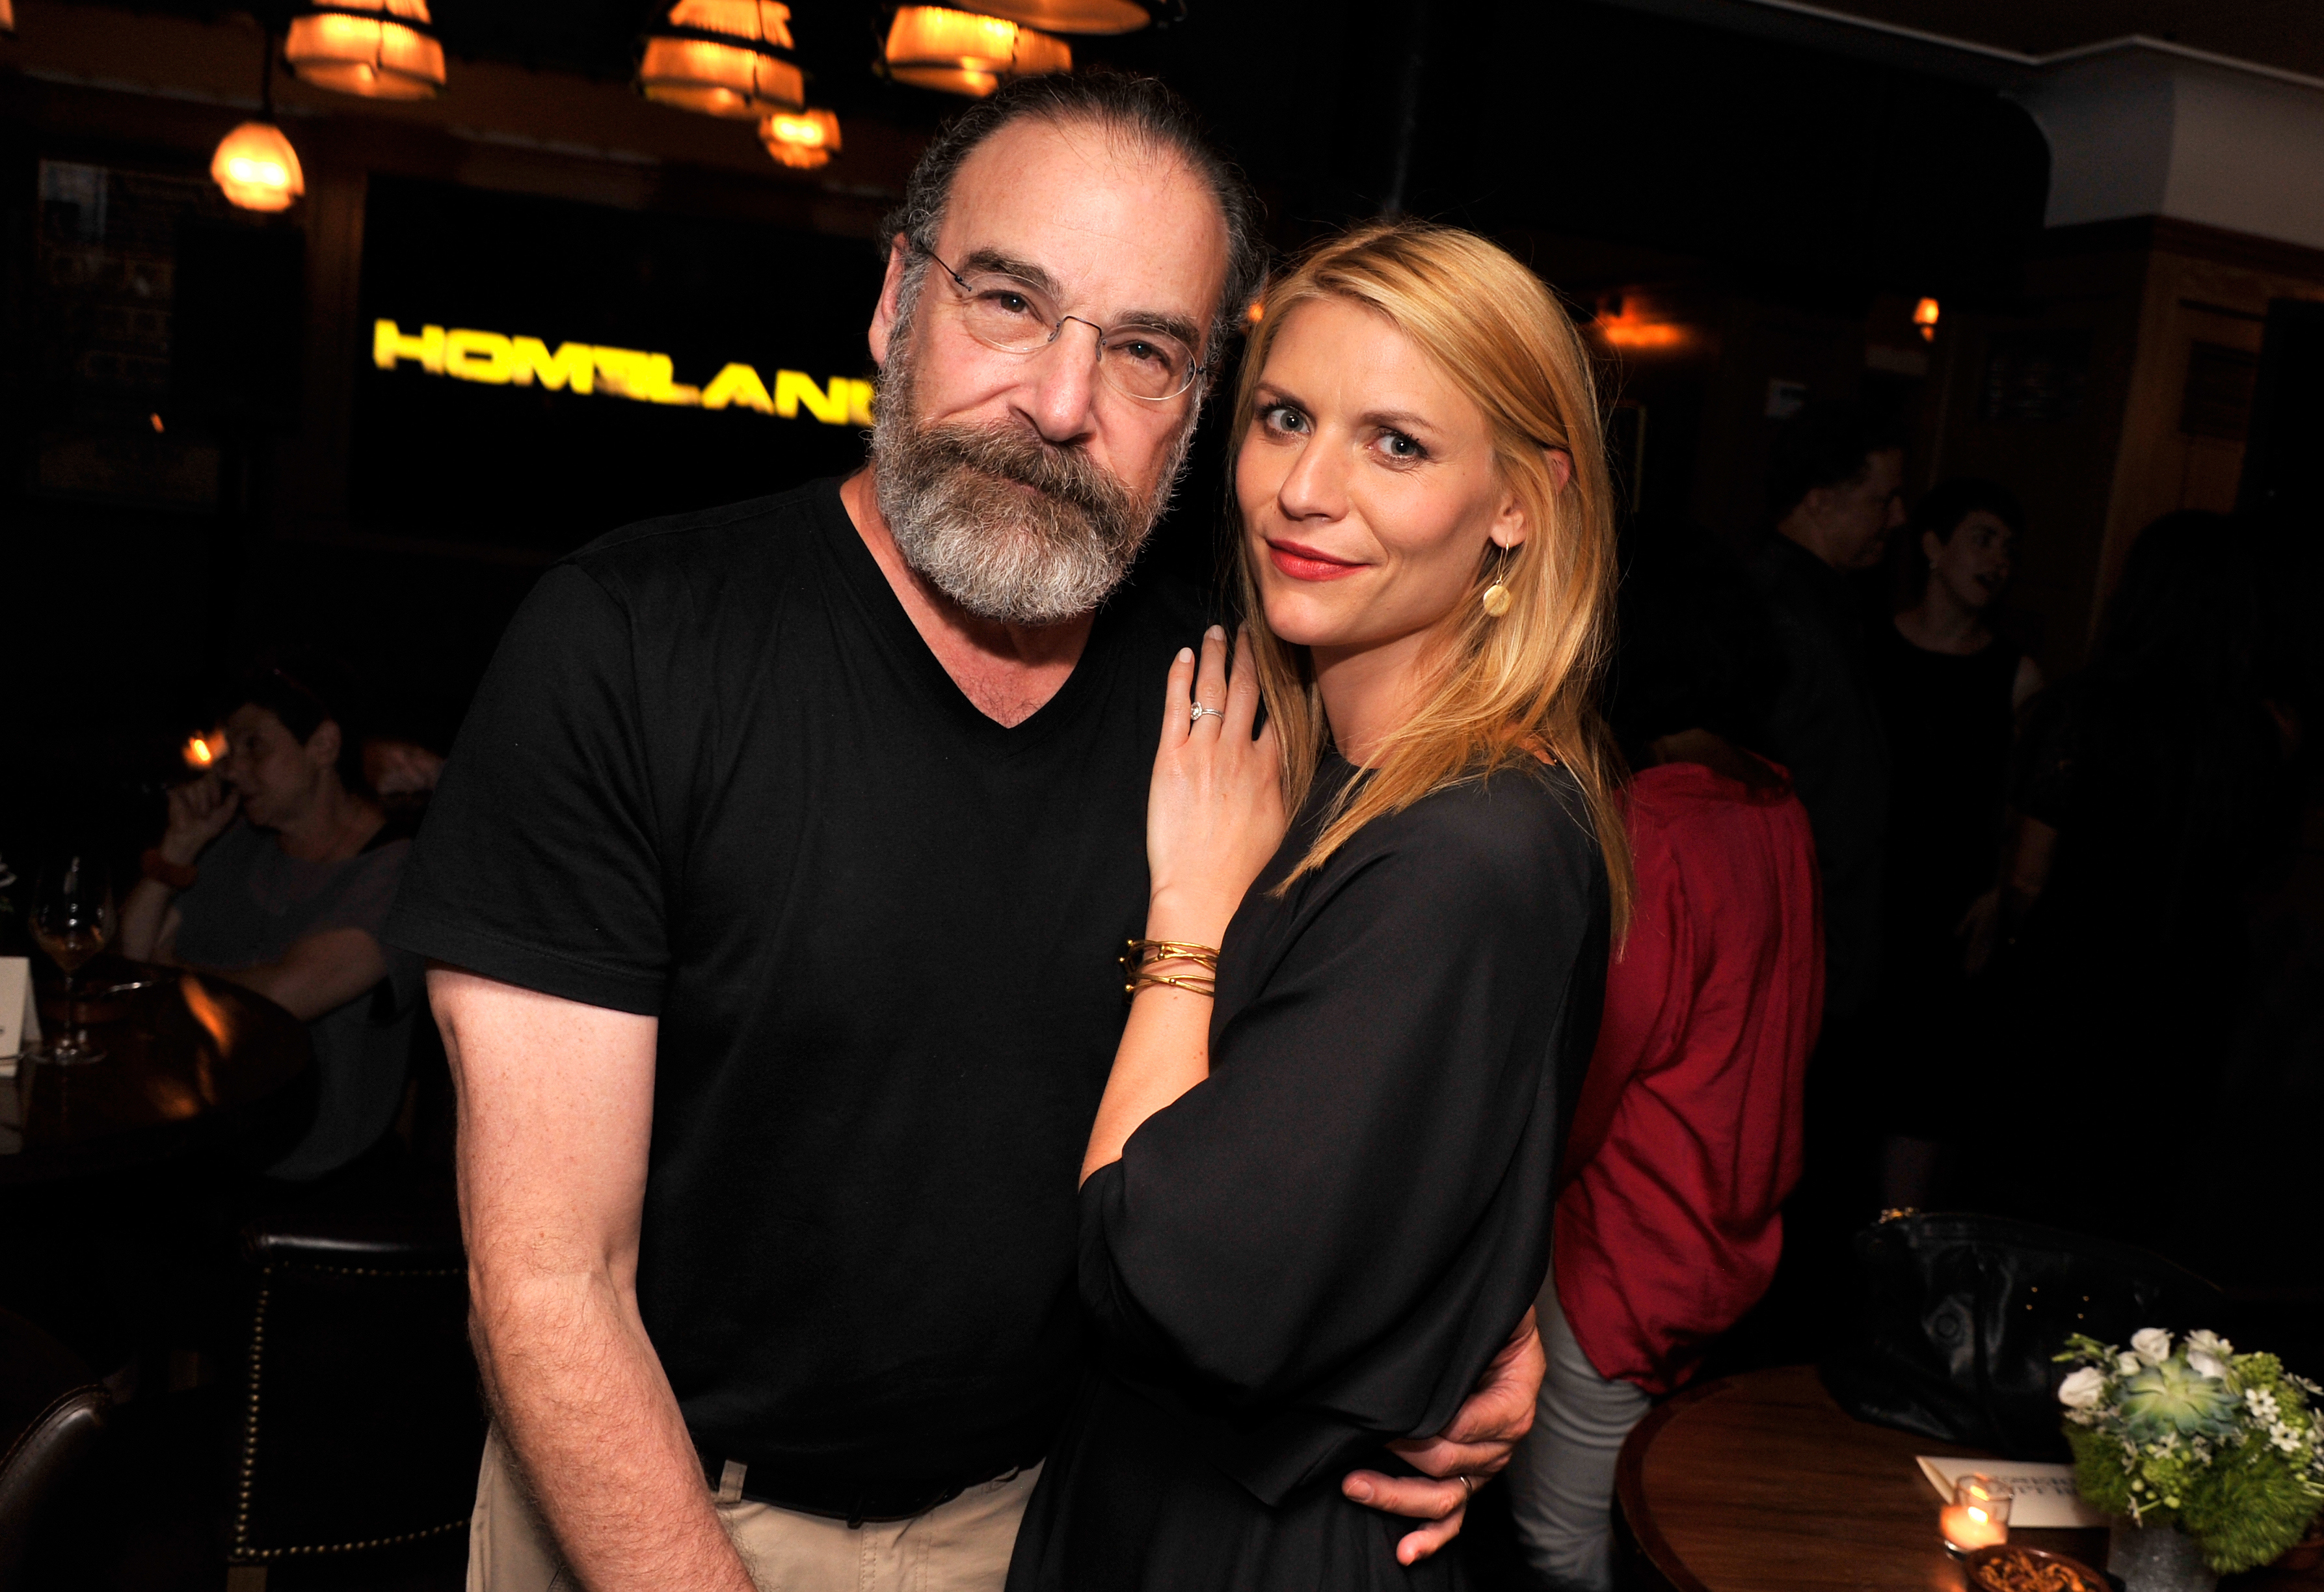 Actors Mandy Patinkin and Claire Danes attend a Private Reception And Screening Of Homeland Season 4 on September 4, 2014 in New York City.